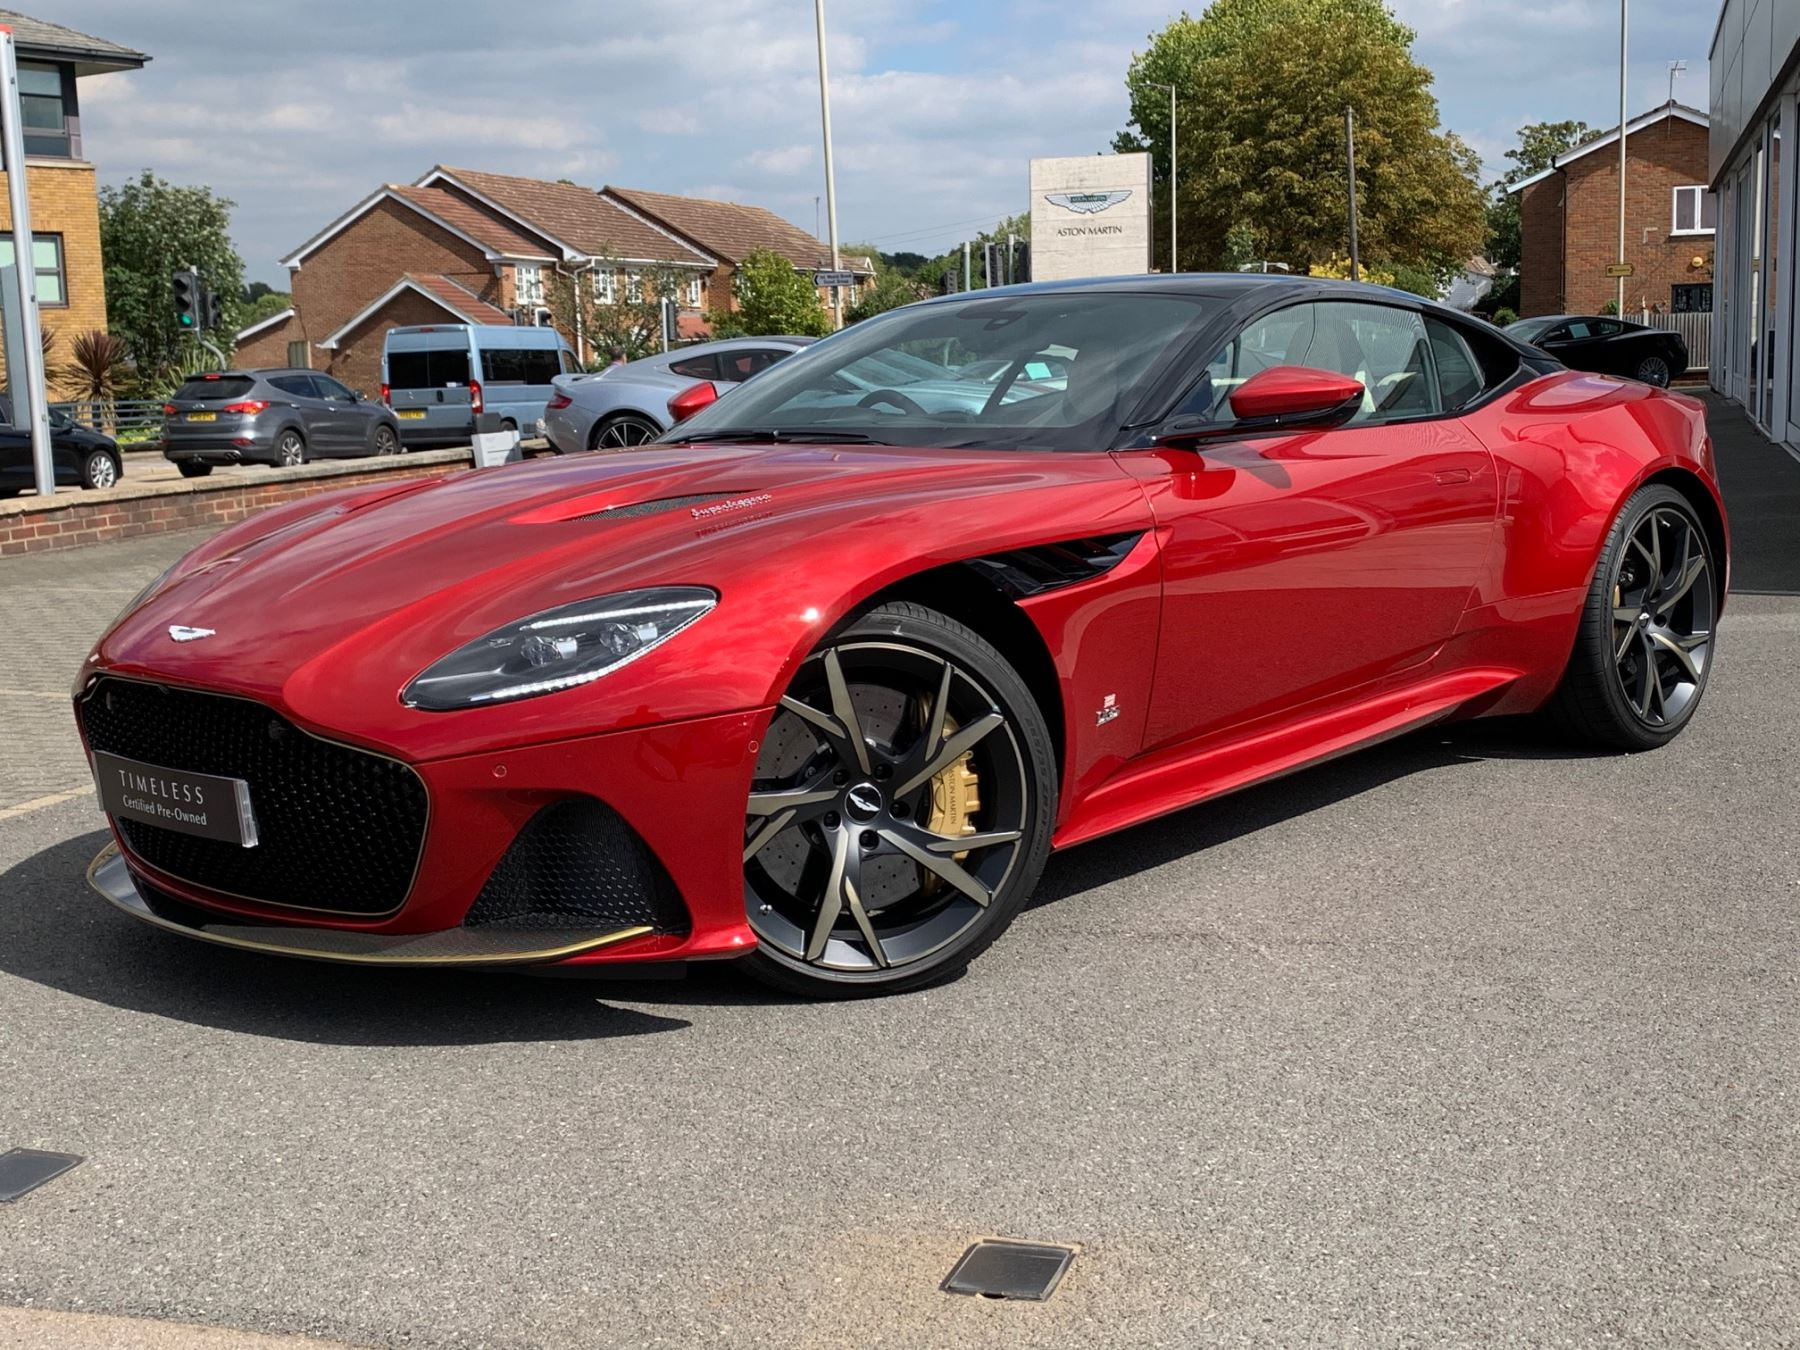 Aston Martin DBS V12 Superleggera 2dr Touchtronic 5.2 Automatic Coupe (2018) image